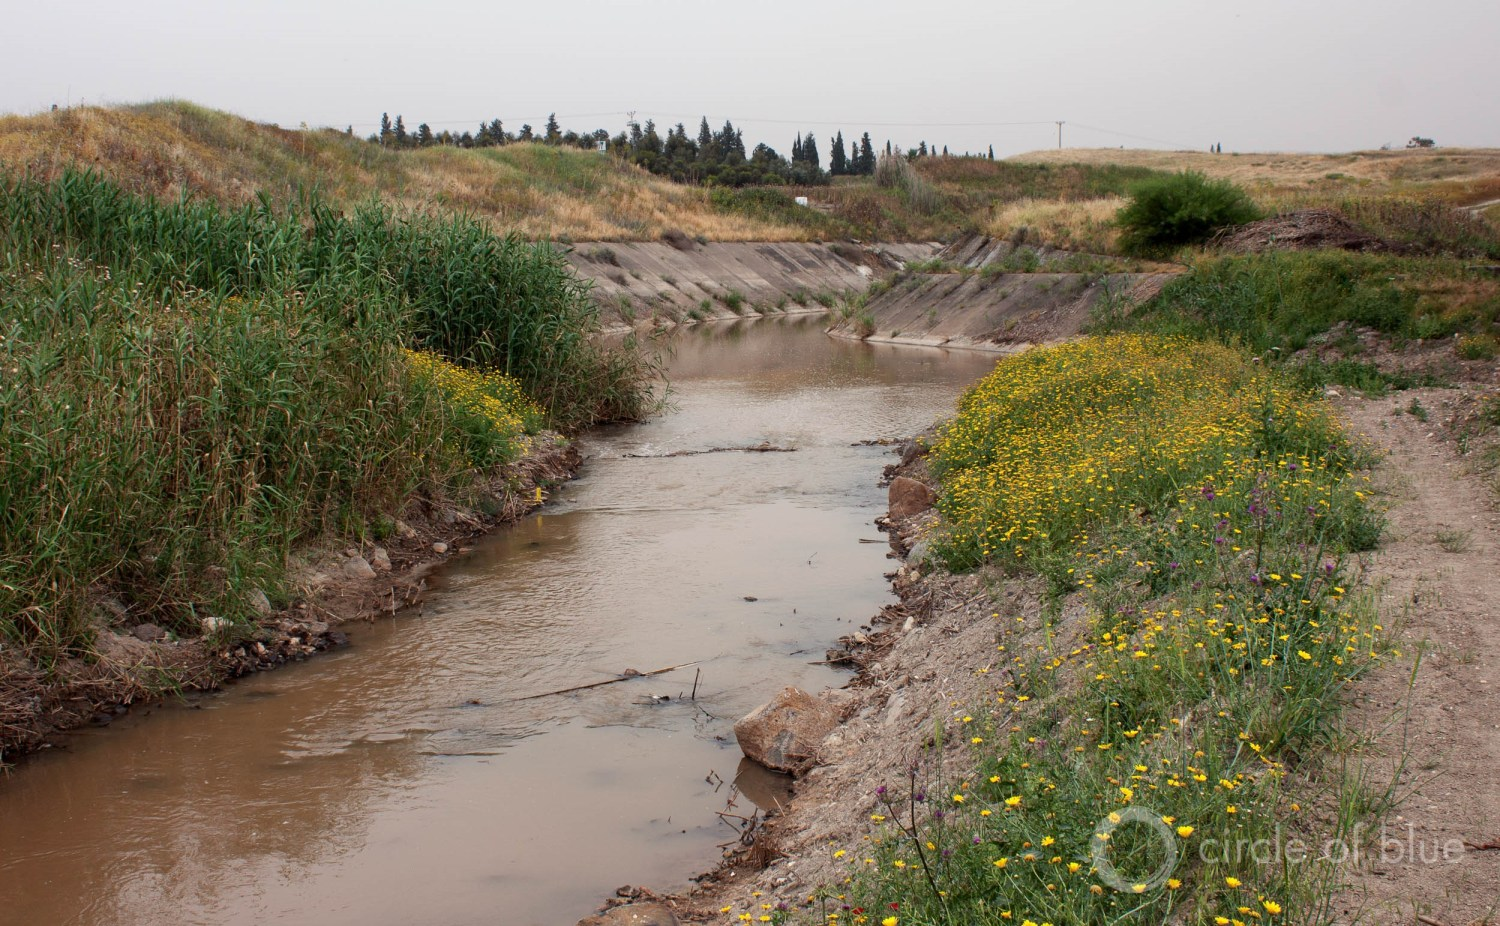 The Jordan River downstream of Lake Kinneret resembles a drainage ditch. Photo © Brett Walton / Circle of Blue